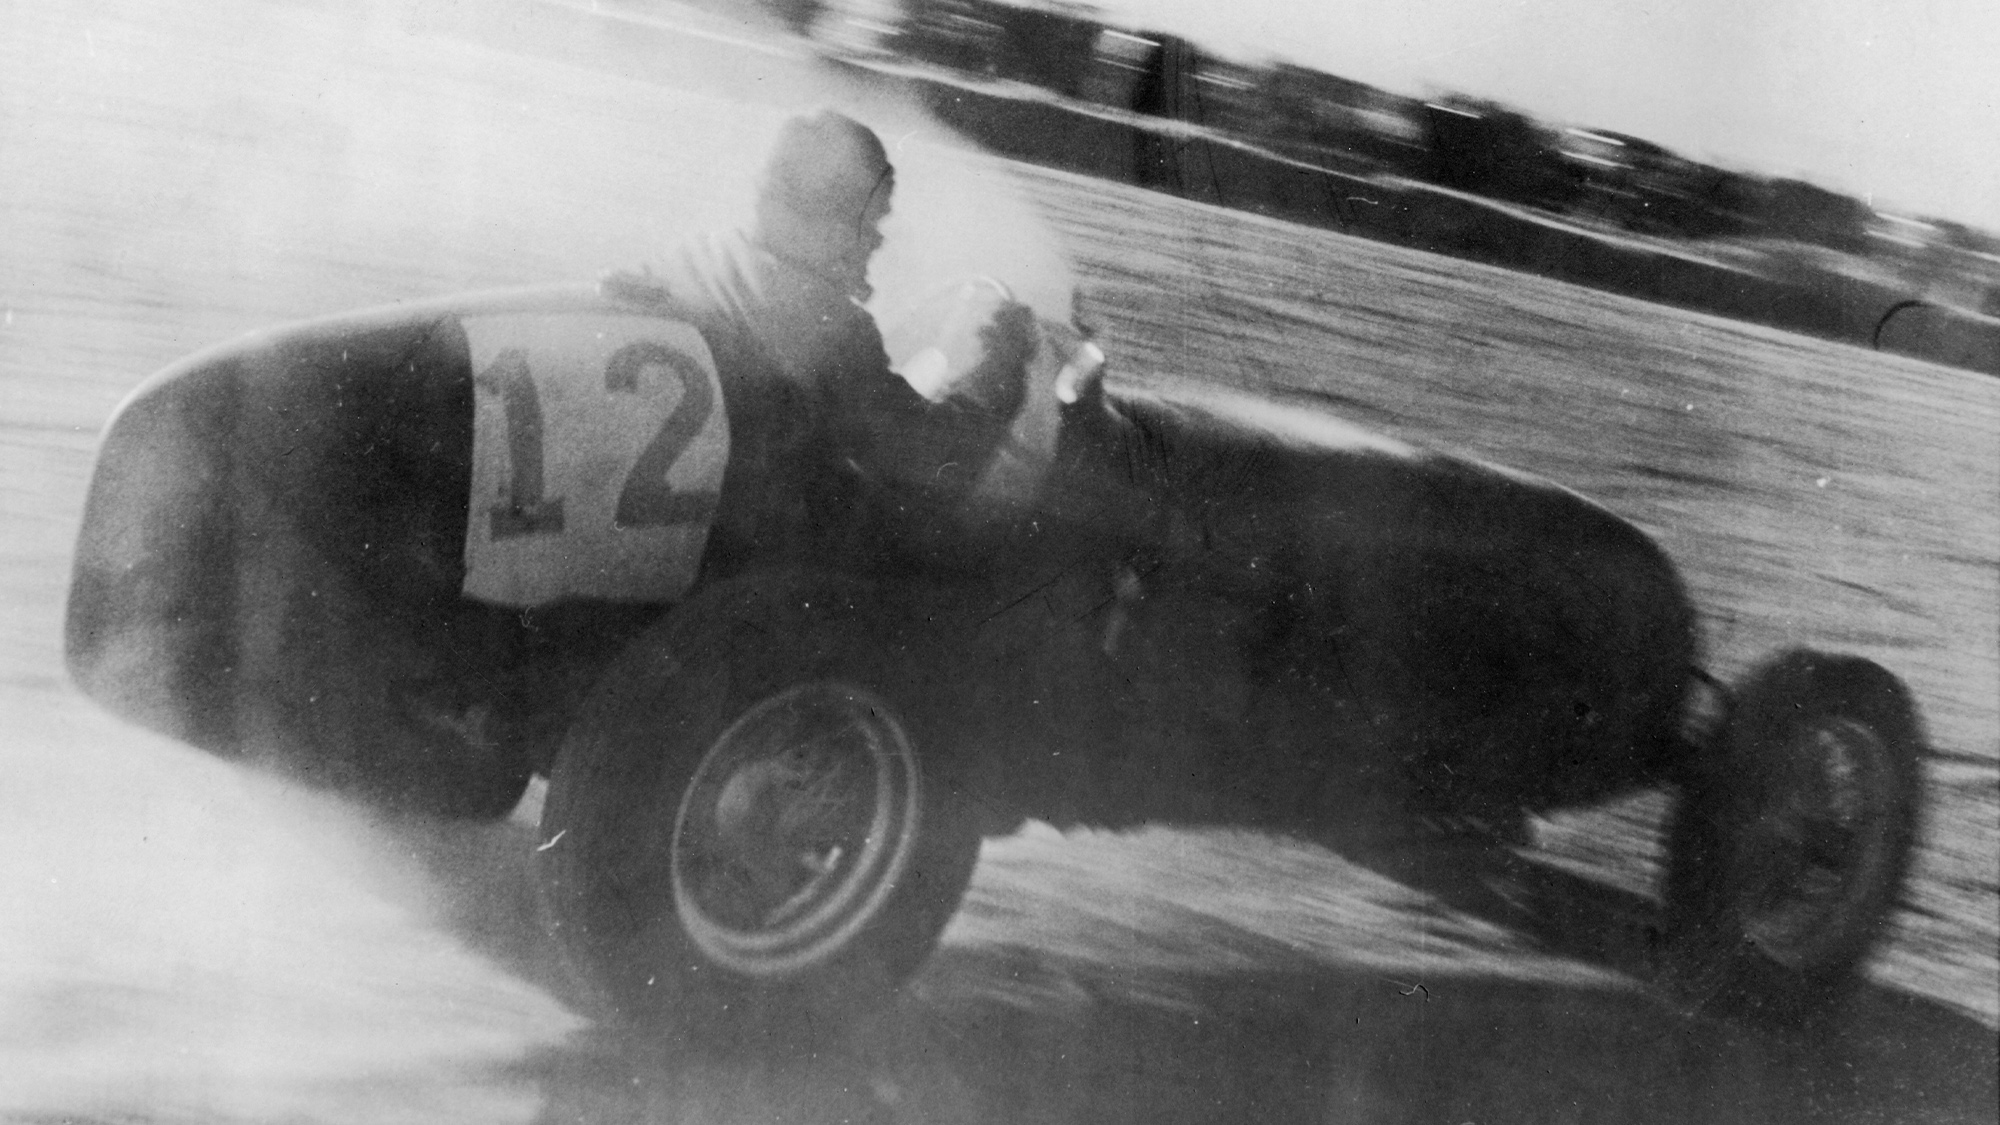 Grands prix on ice: when drivers headed north to race in the snow